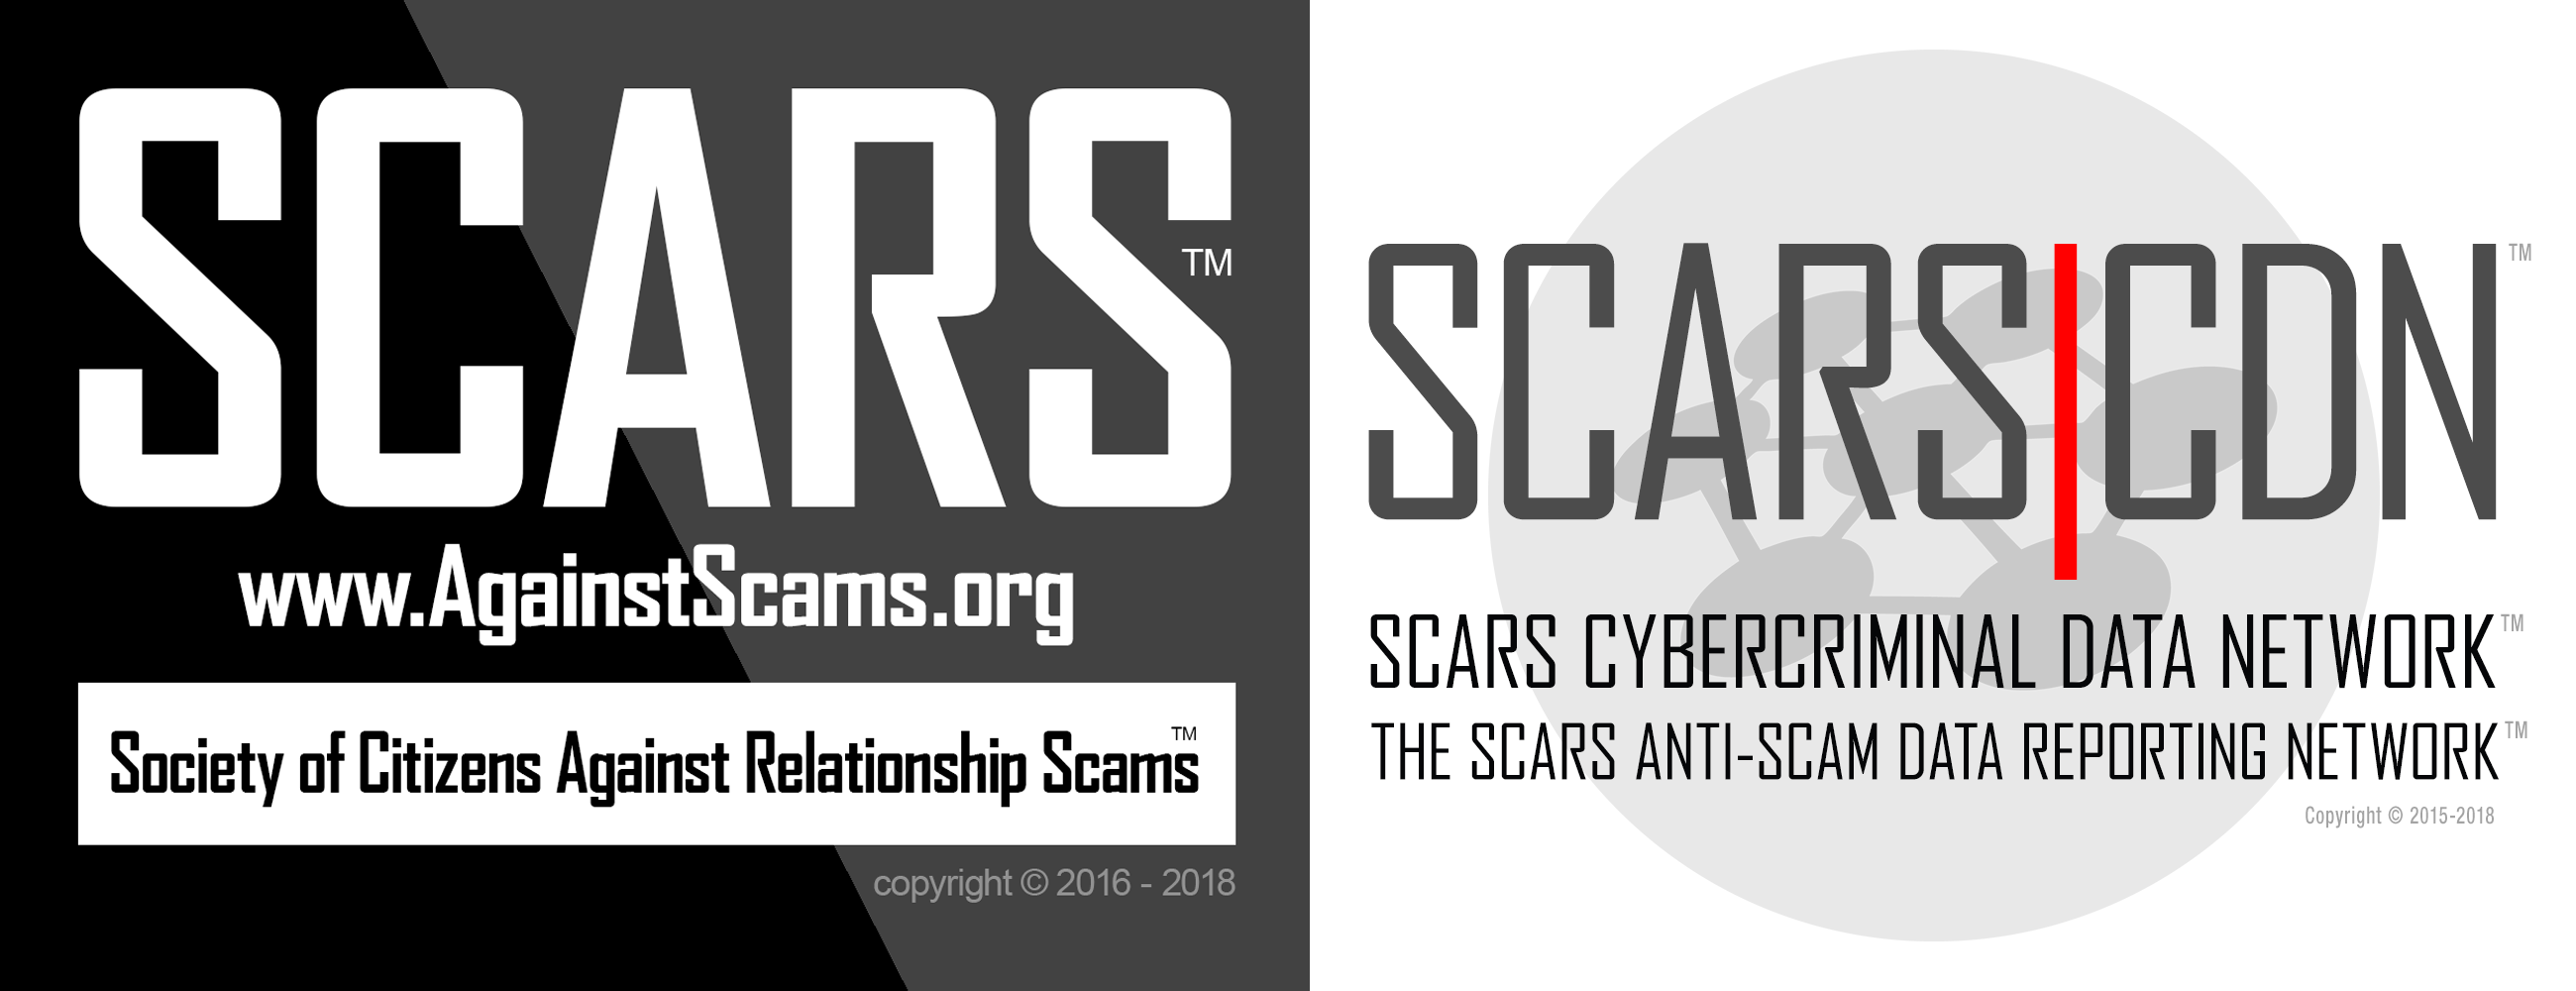 SCARS|CDN™ the SCARS Cybercrime Data Network™ - an Anti-Scam Data Reporting Network Connected Website